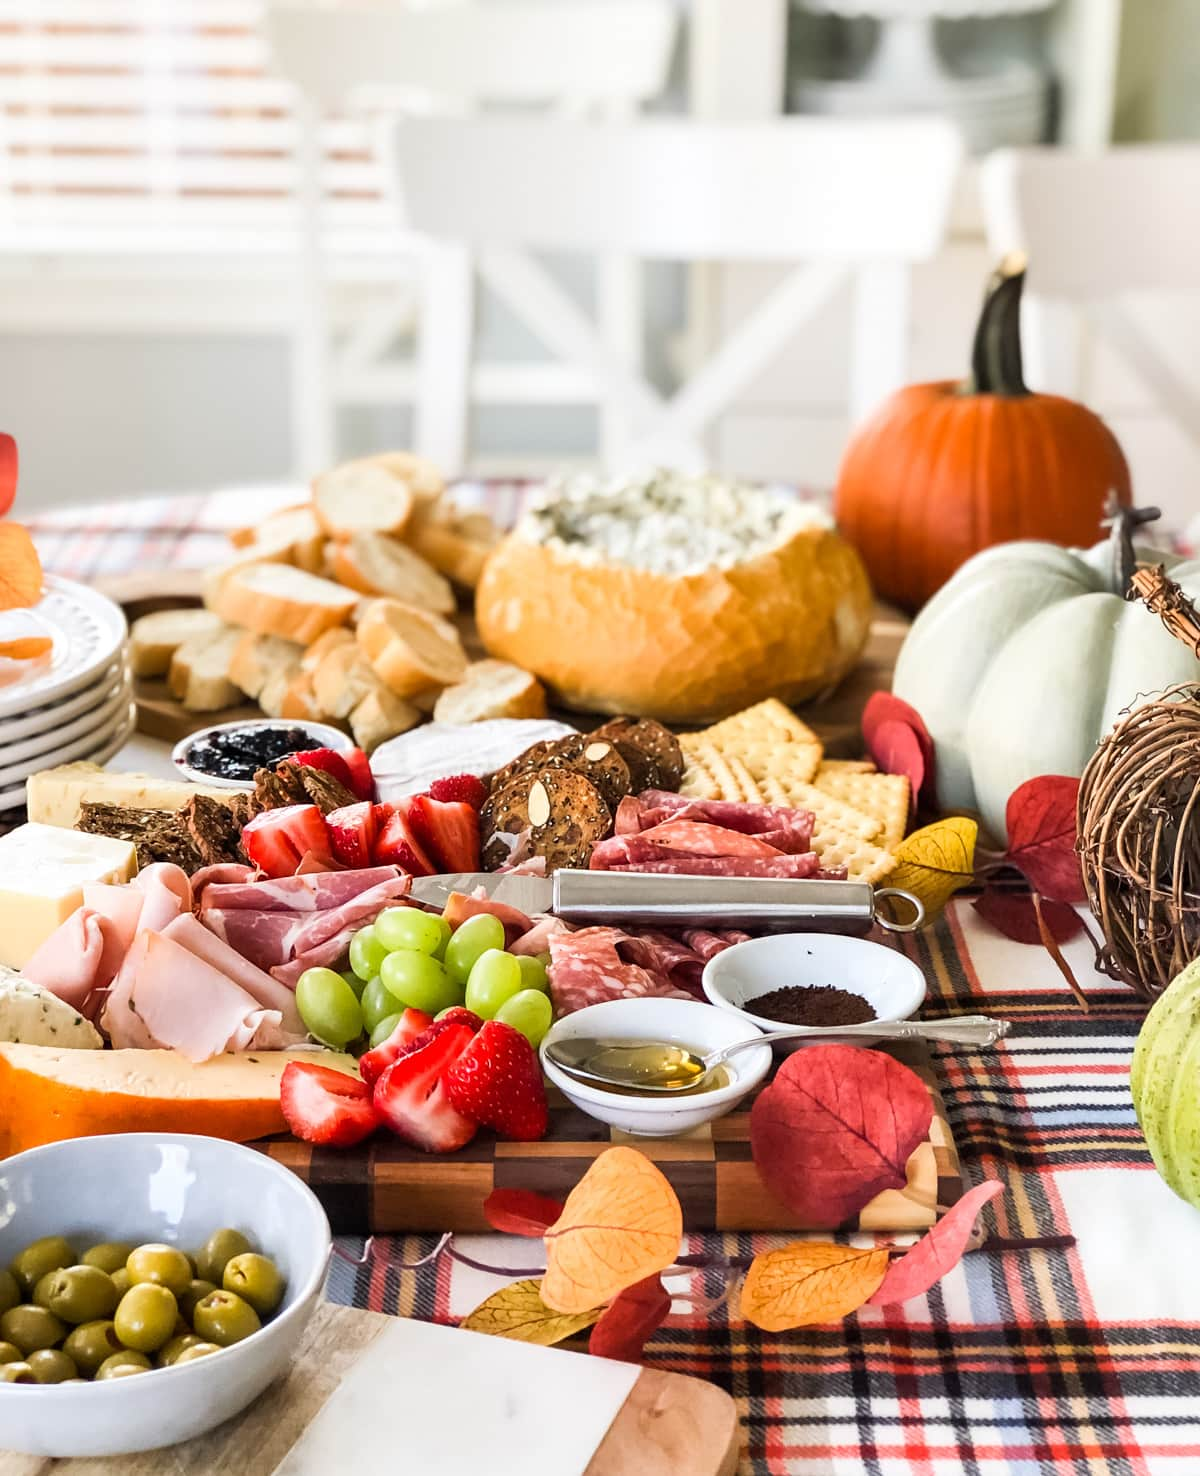 A table full of delicious charcuterie, appetizers, dips and fruit